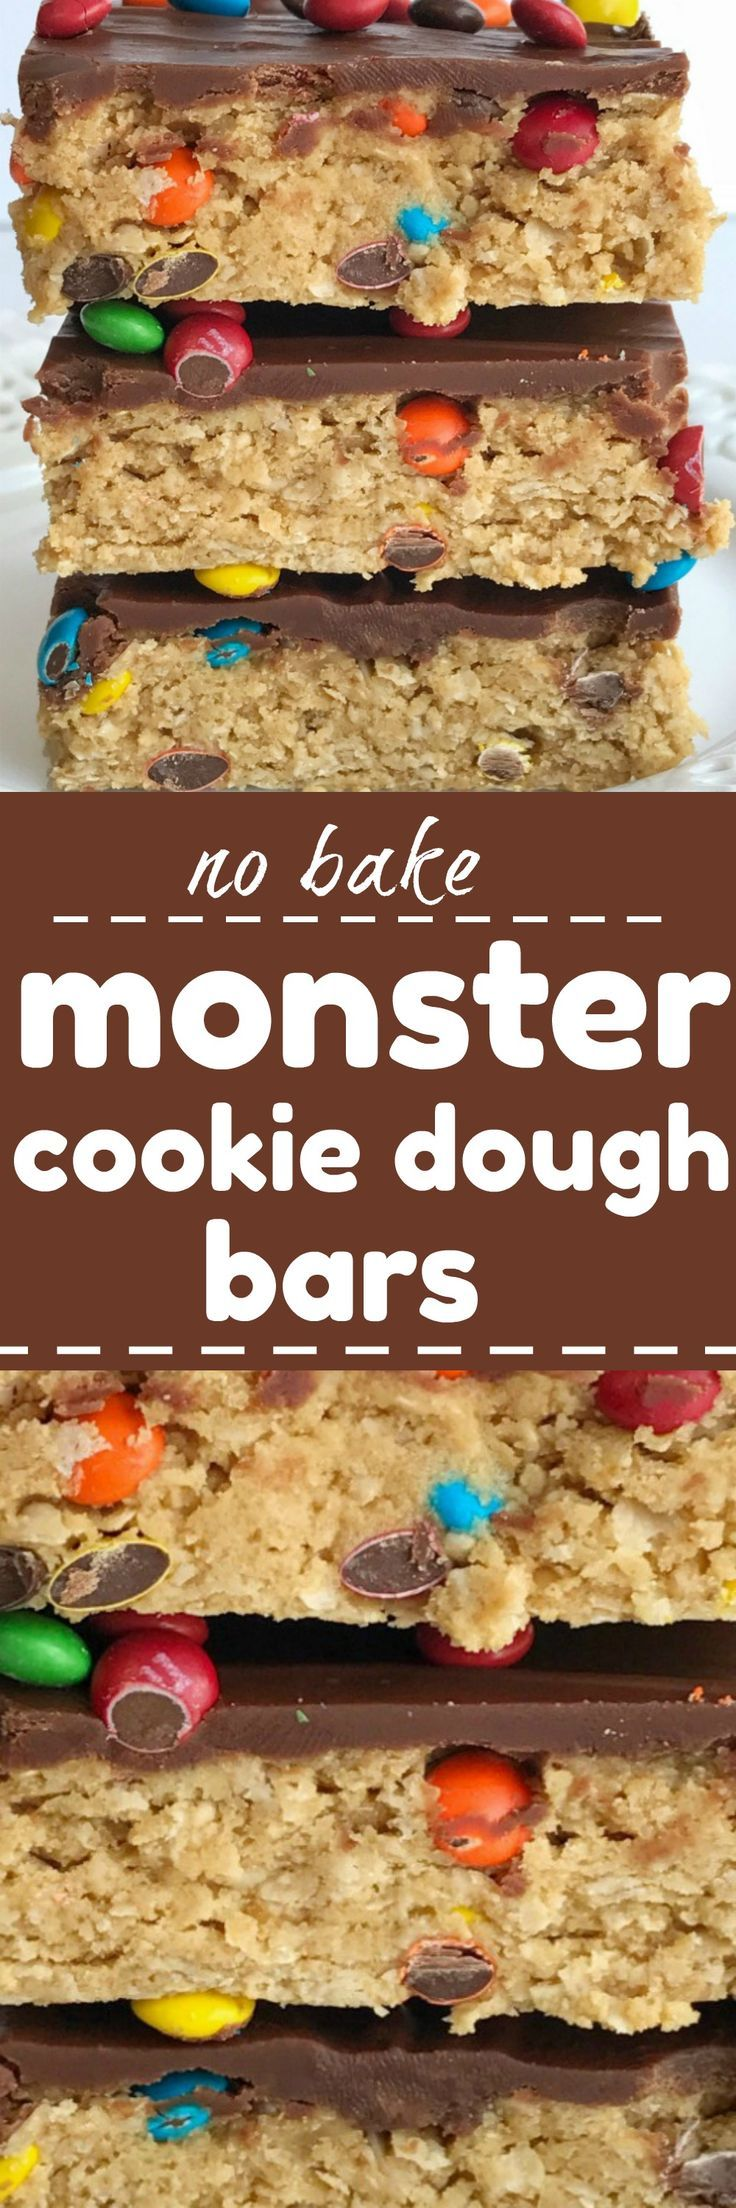 All your favorites about monster cookies but in no-bake, egg free monster cookie dough bars! Peanut butter, oats, chocolate, and m&m's. These can be made in just minutes and are a fun treat or dessert for the kids to make. Everyone will love these easy an